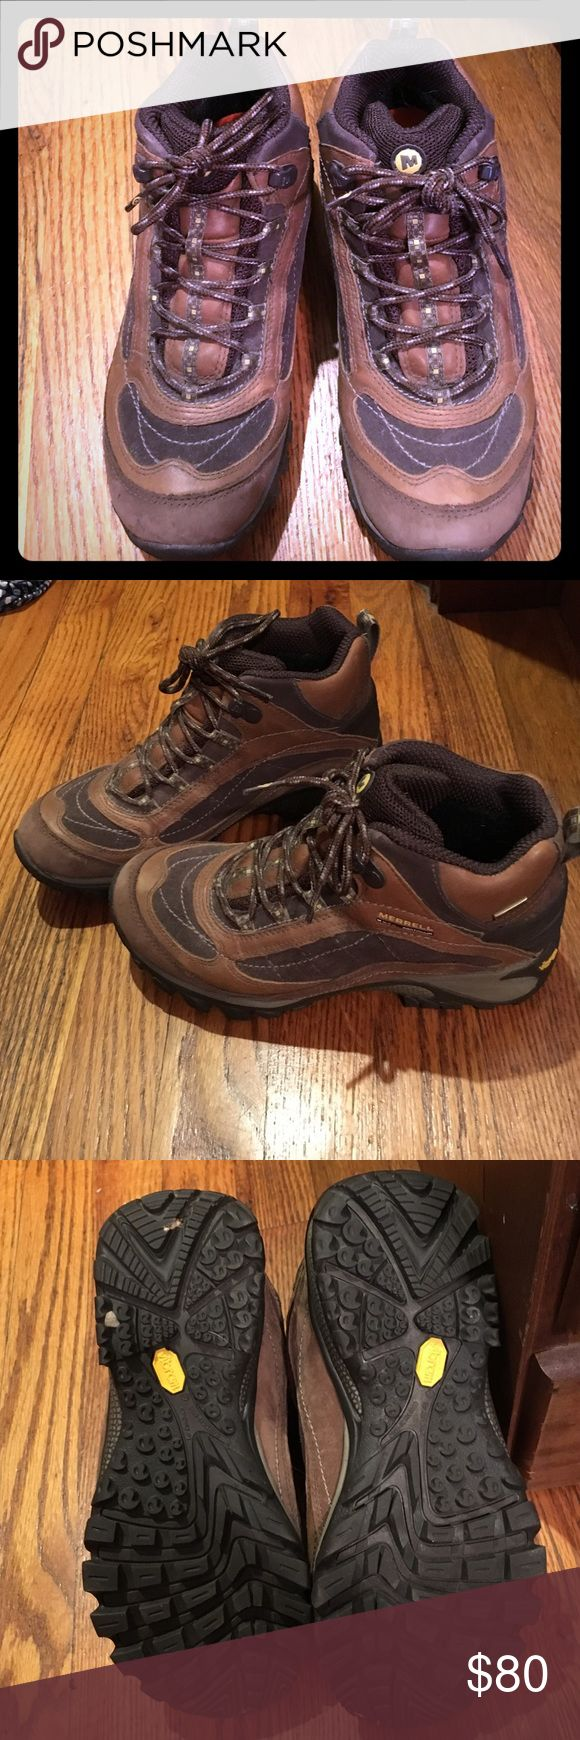 Merrell Hiking Boots Like new Merrill hiking boots. Ladies size 7. Well made and waterproof. Only worn once! Shoes Athletic Shoes